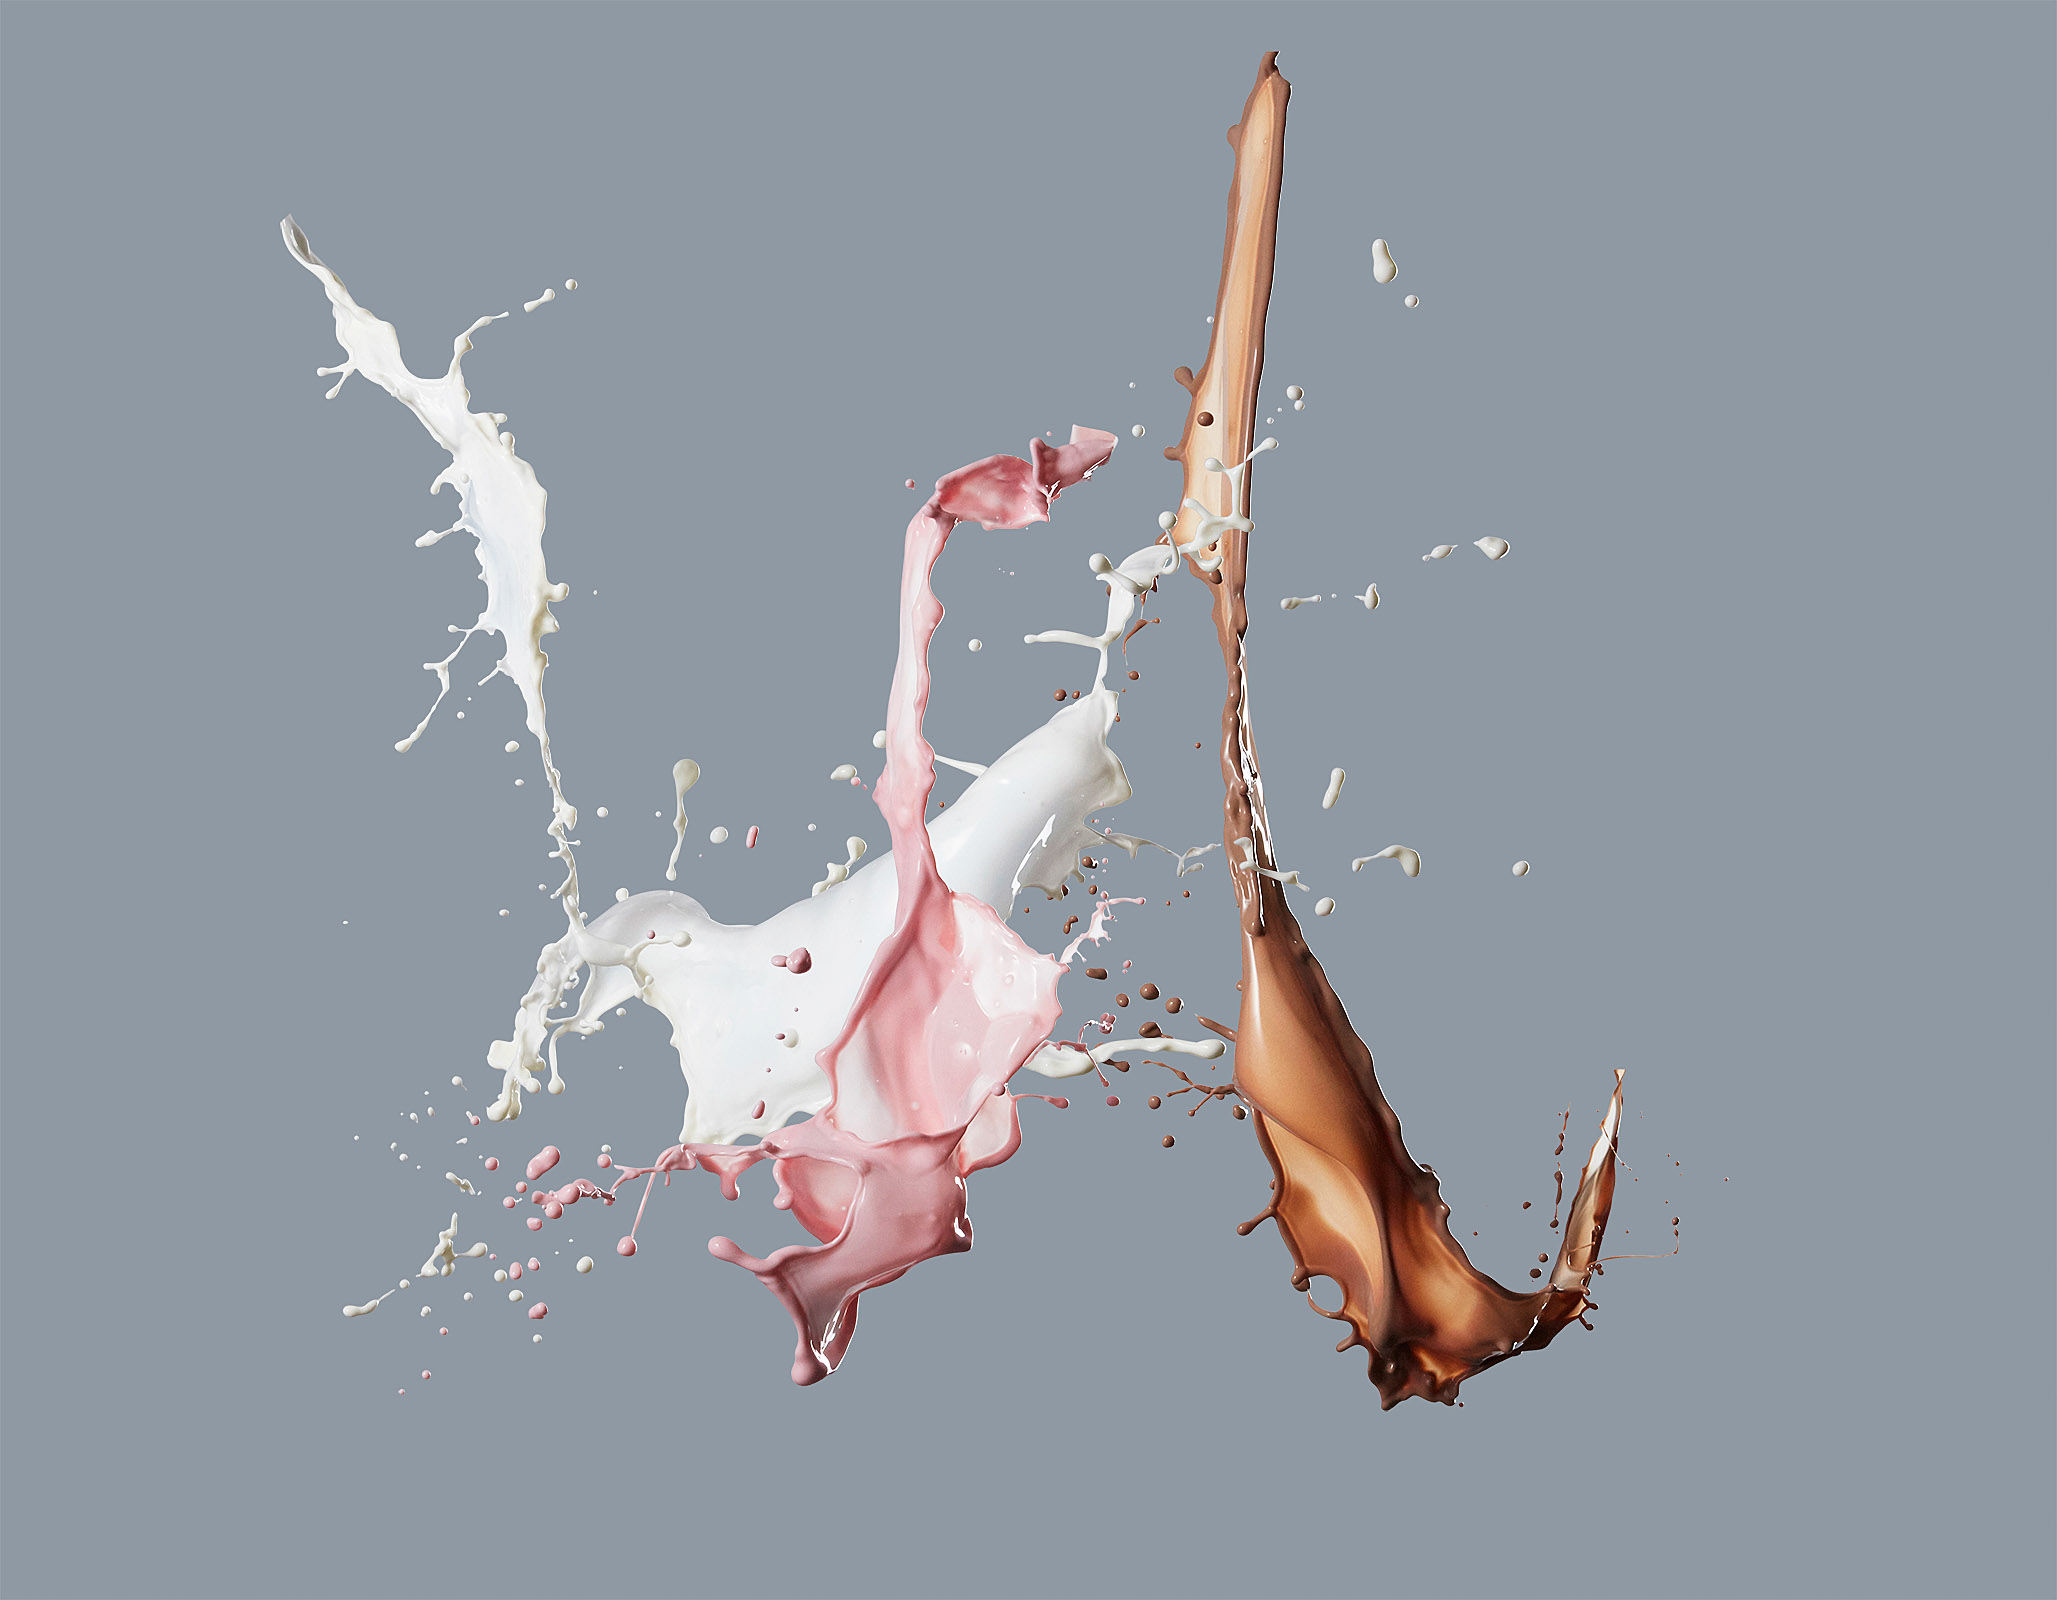 food stylist in San Francisco - Neopolitan milk splash, photographed by Maren Caruso photographer